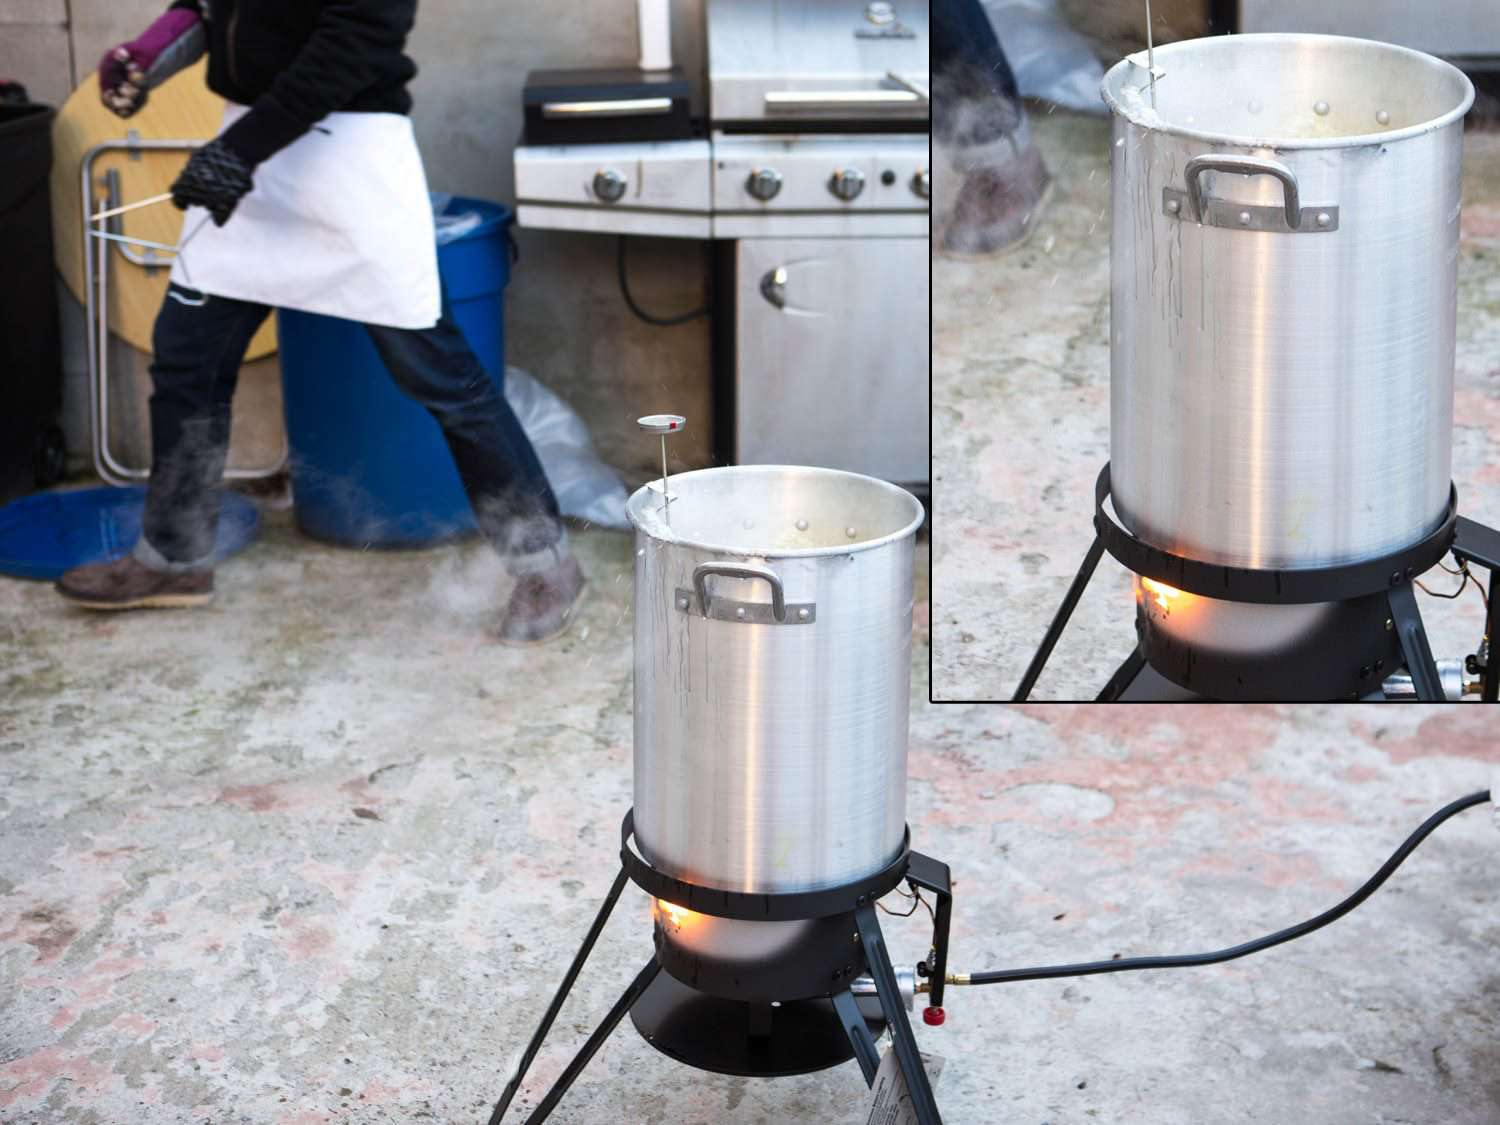 Boiling fat shooting out of kettle in which turkey is being deep fried